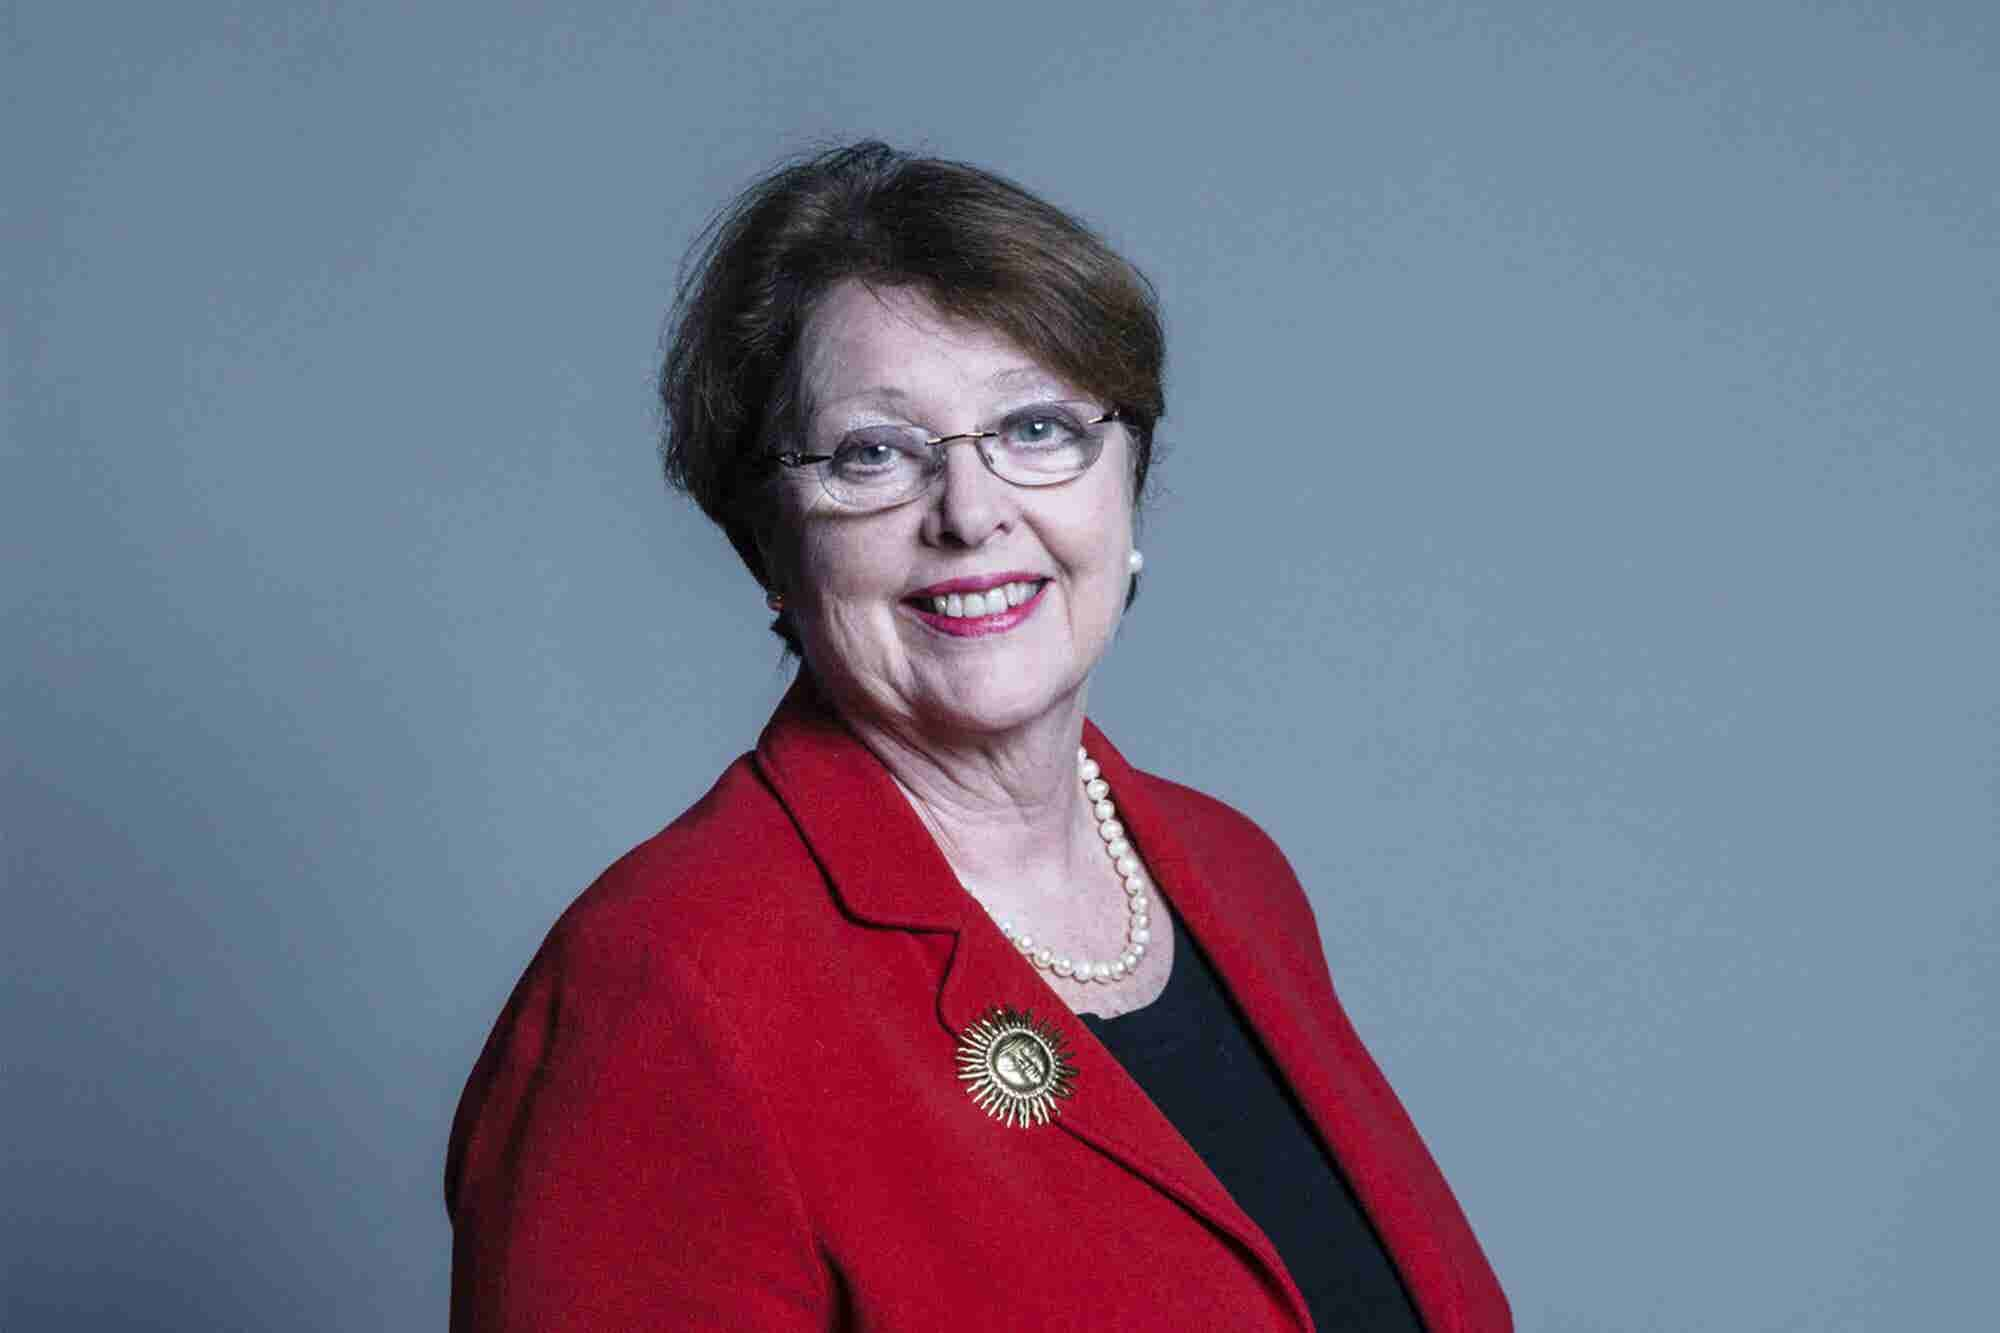 The Cause of Social Sector Enterprise Can Transform The Prospects for India's Talent Believes Baroness Thornton